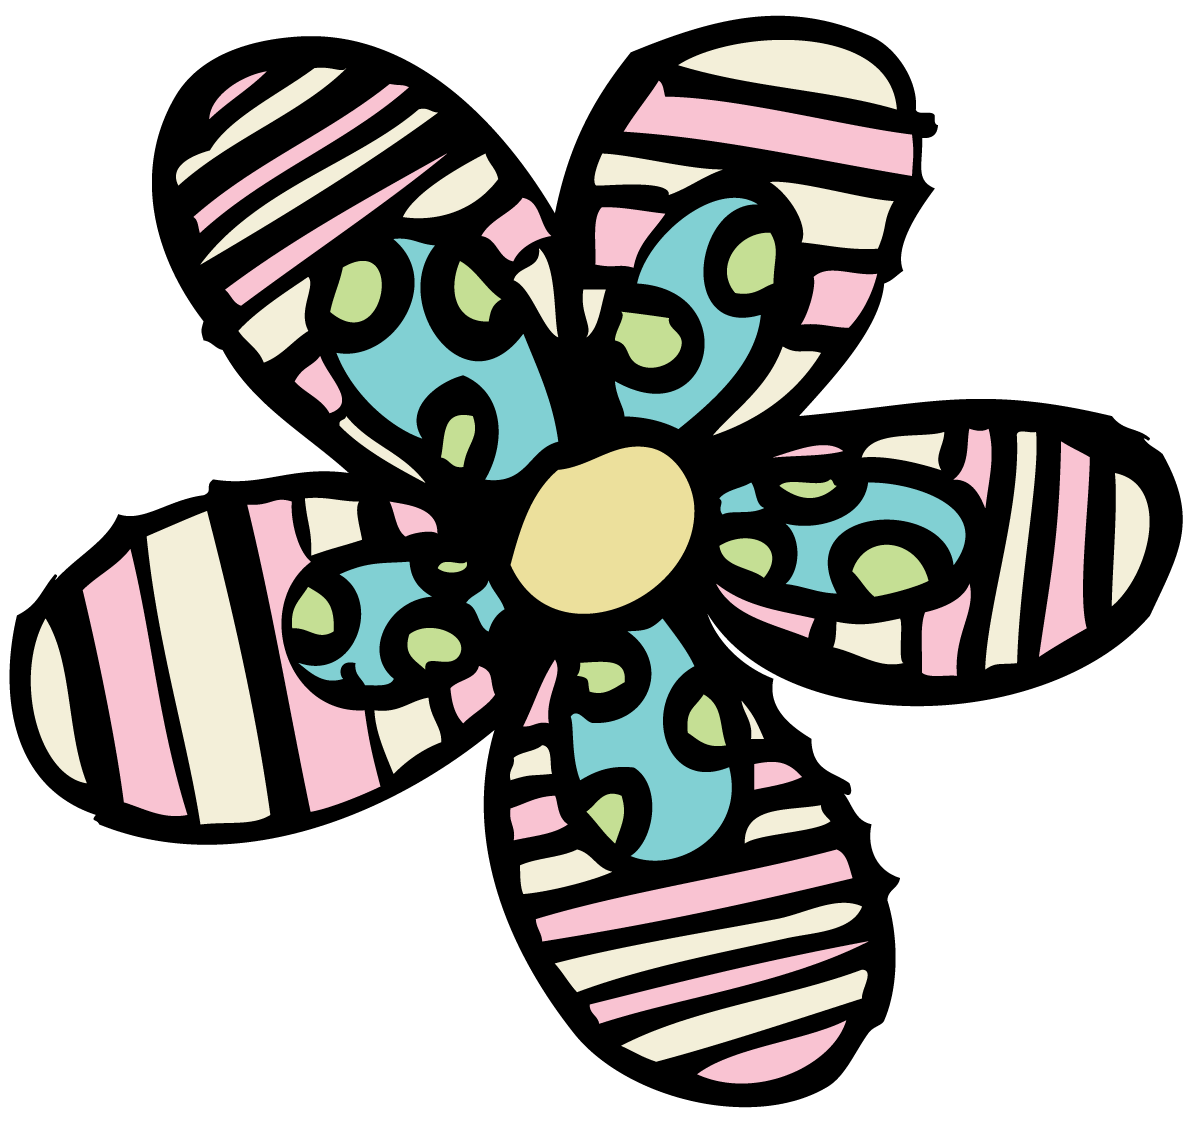 All things illustrating patterned. Girly clipart girly stuff